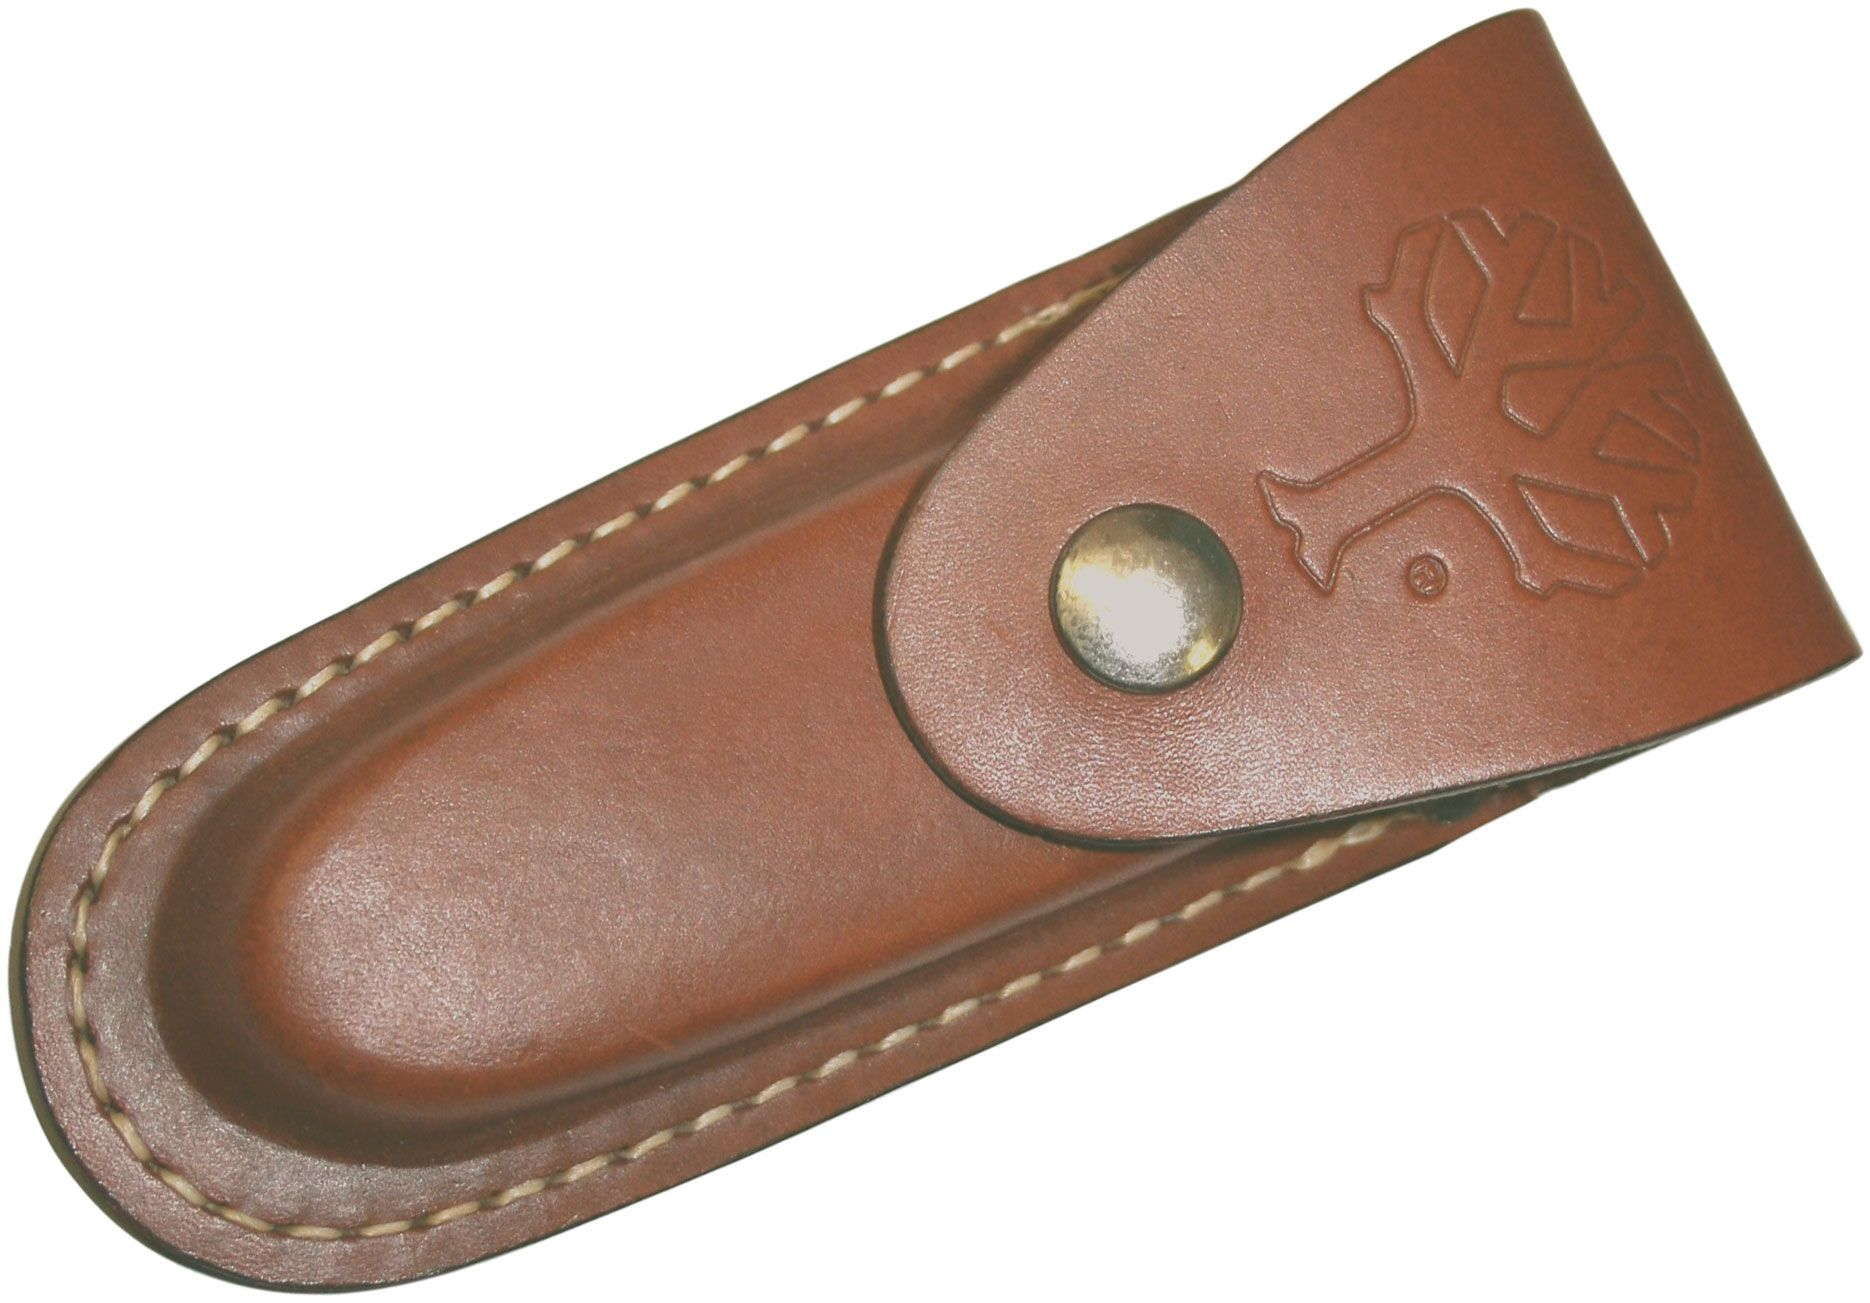 Boker Genuine Leather Sheath for Folding Knives up to 4.75 inch Closed